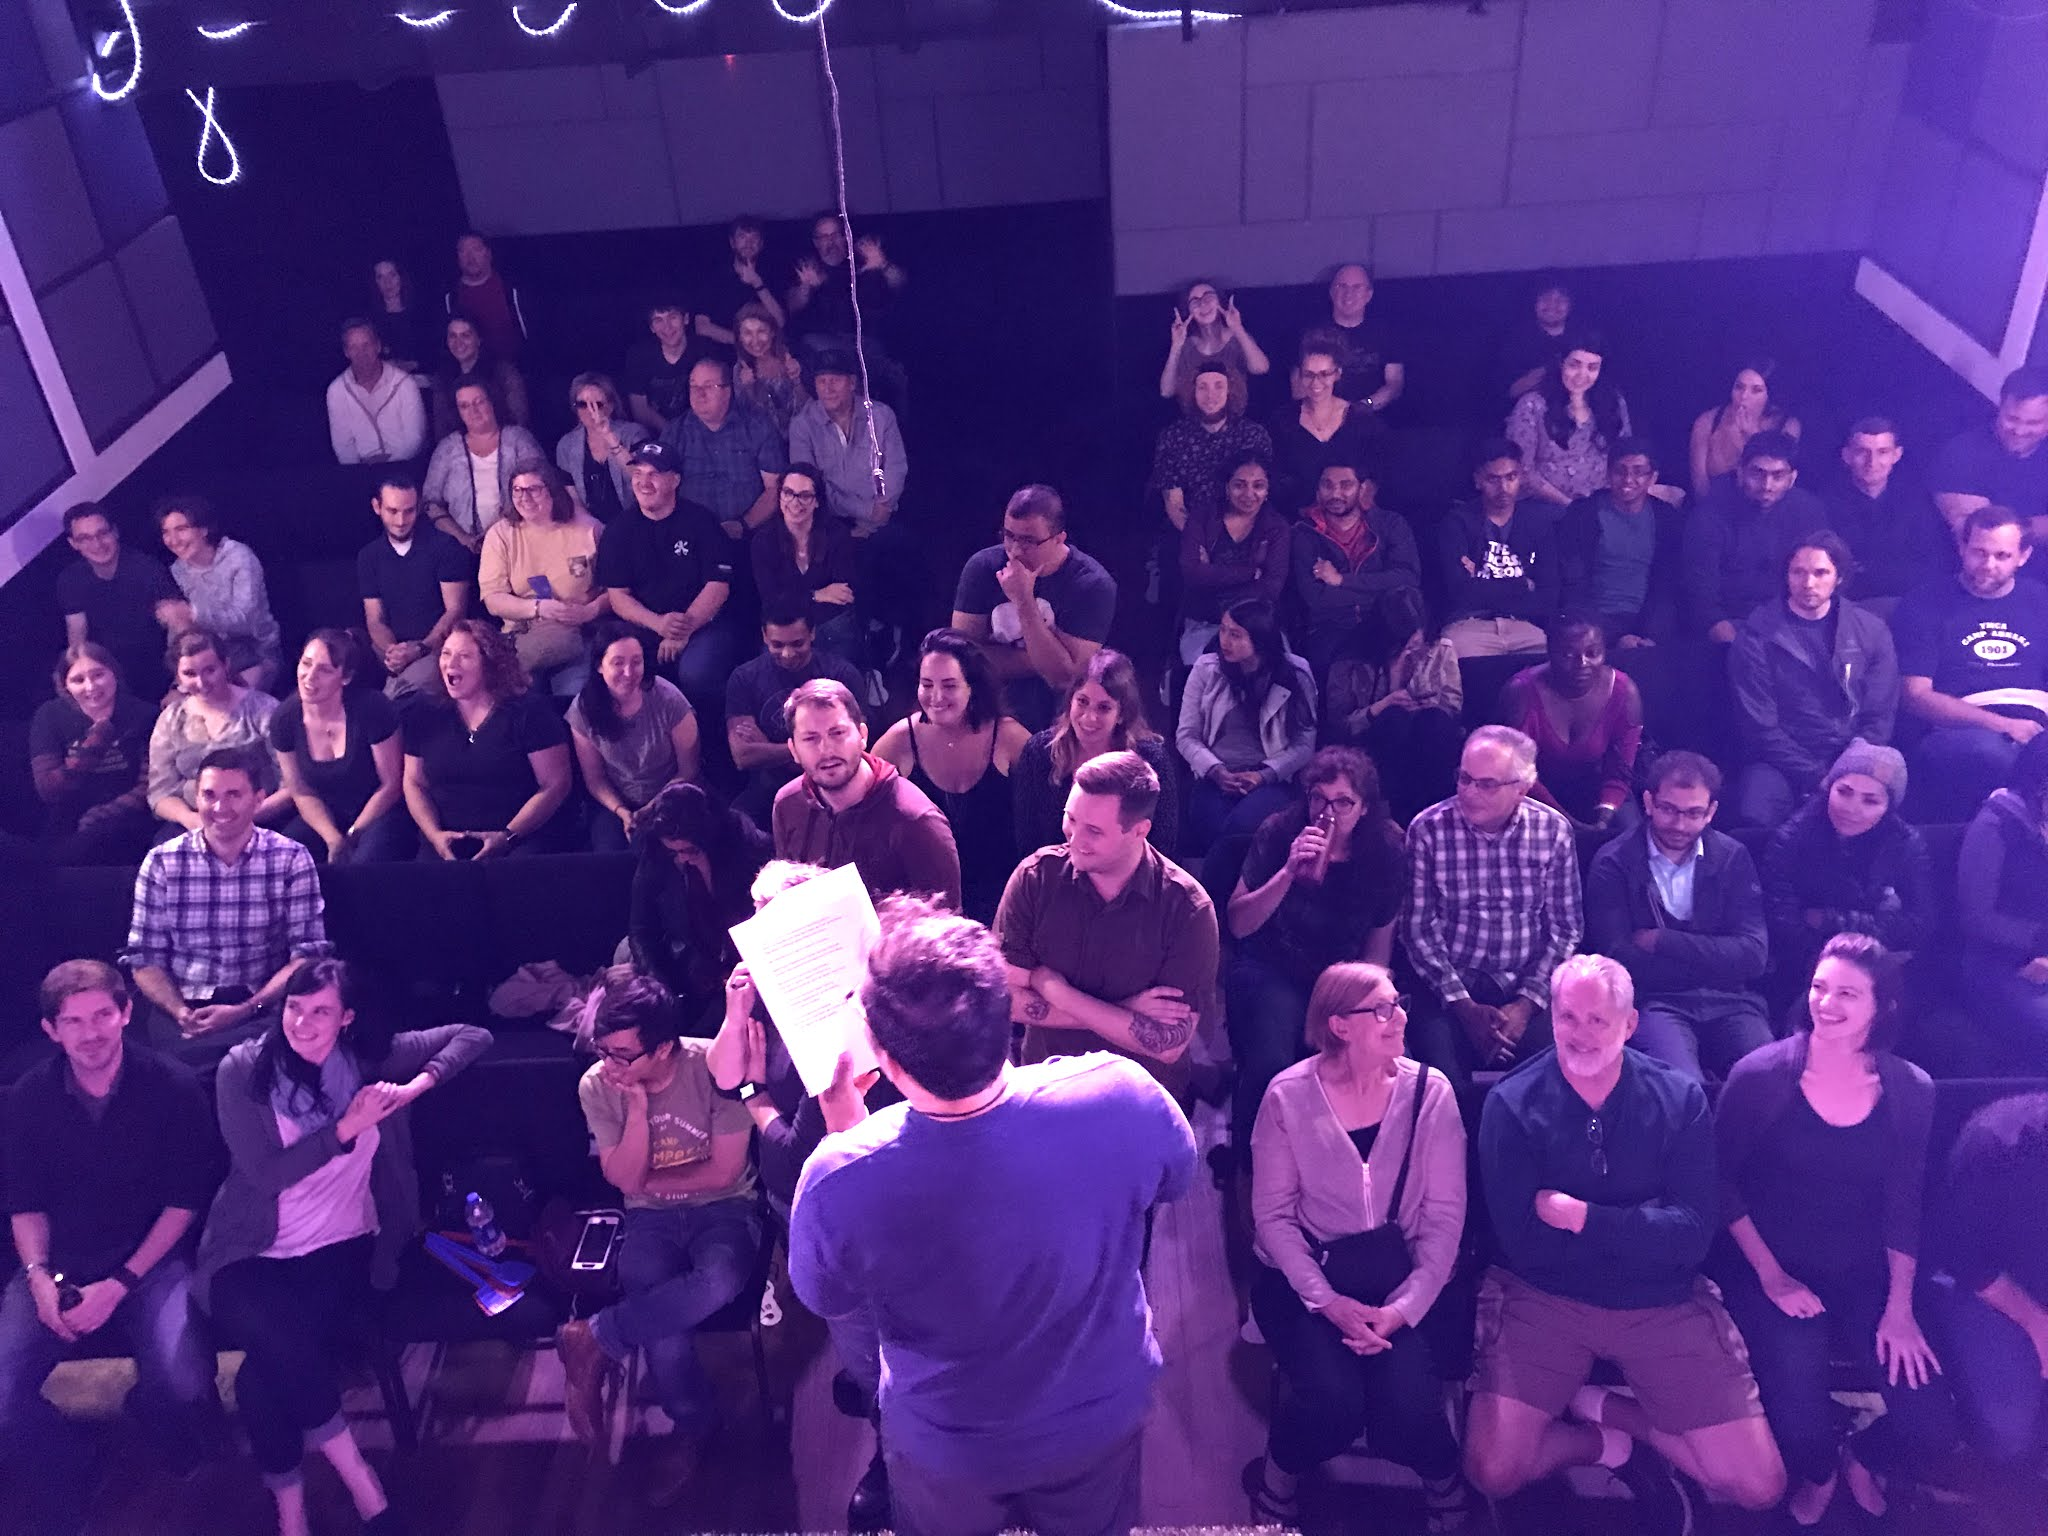 5th Saturday Improv jam - Every 5th Saturday, we invite you to join us on stage for the late show. Jump in a to the show with main stage players in a safe improv environment.